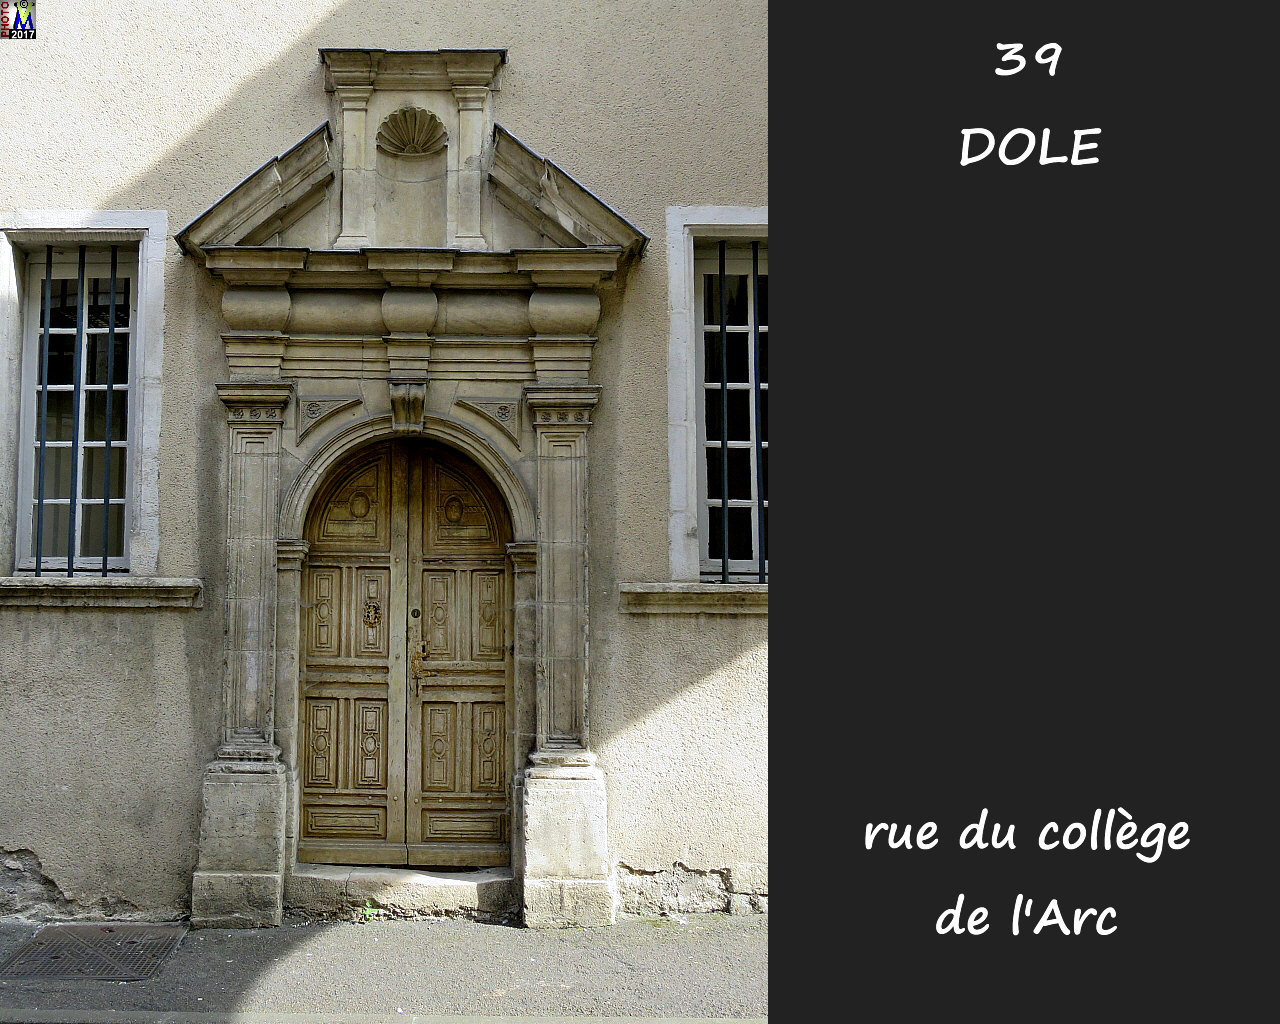 39DOLE_rue-college-Arc-118.jpg